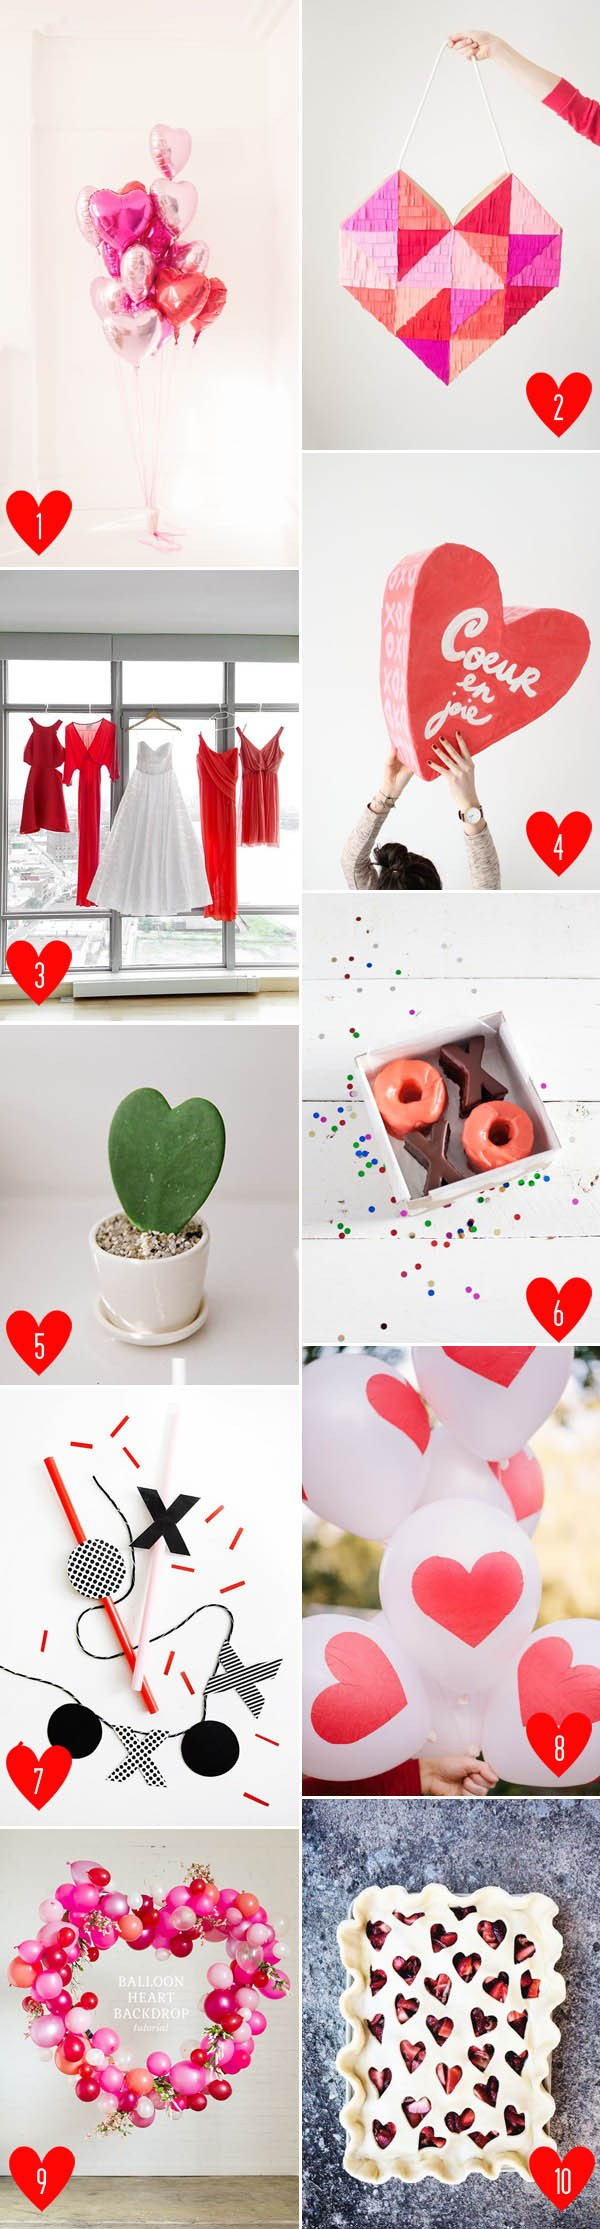 valentines day inspiration5